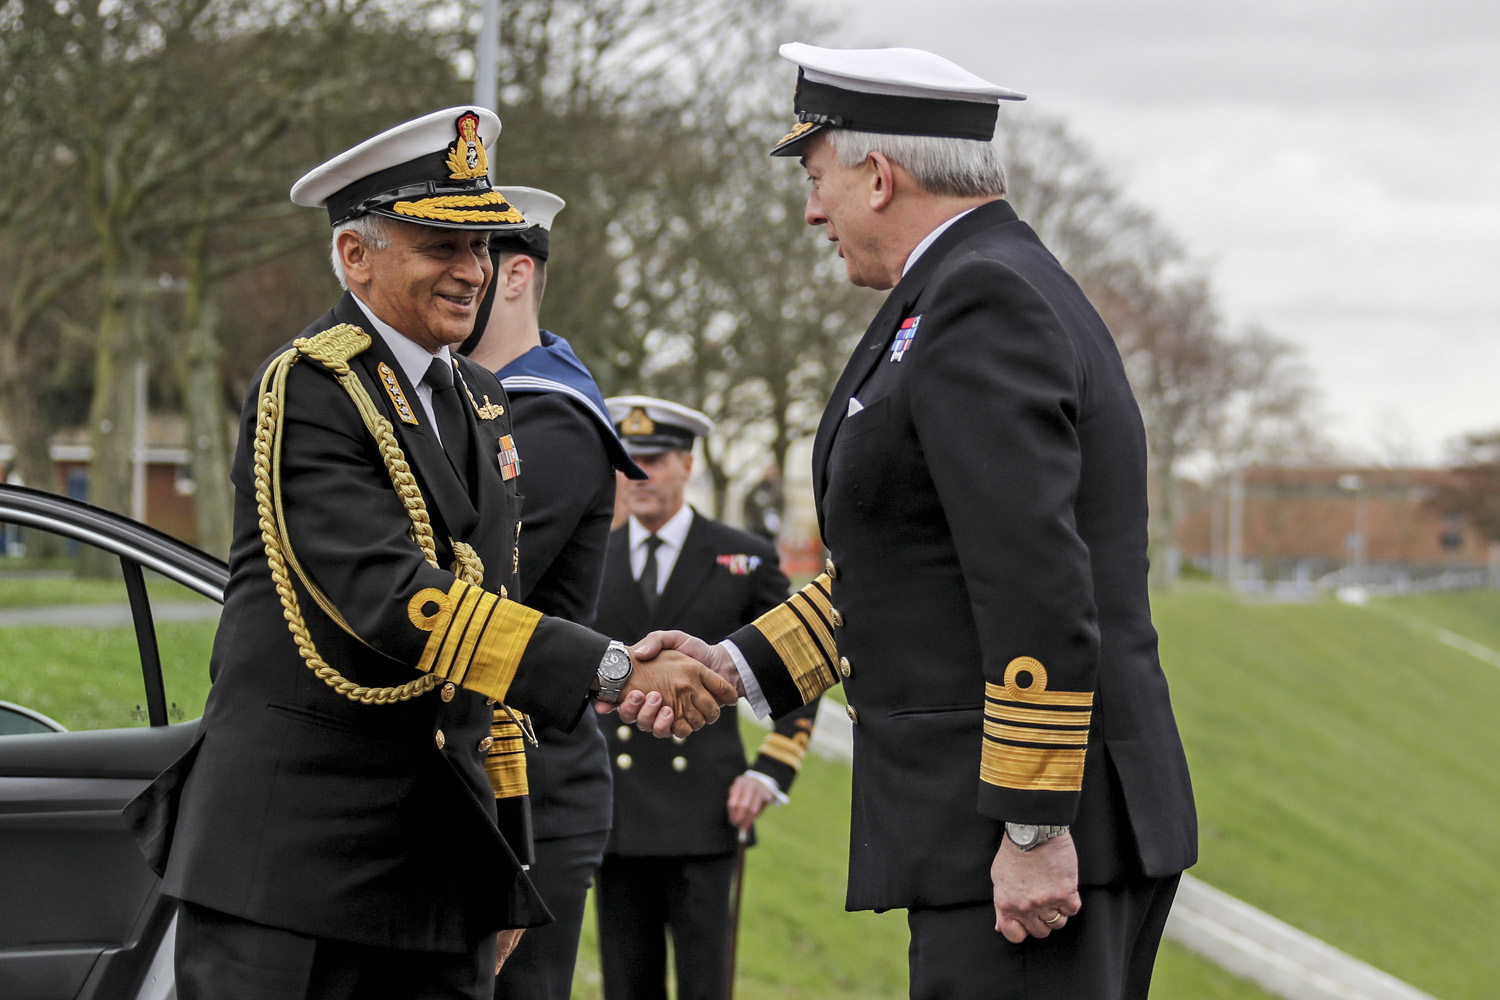 The Chief of the Indian Naval Staff Admiral Sunil Lanba being greeted by The Chief of Naval Staff, The First Sea Lord Admiral Sir Philip Jones KCB ADC RN